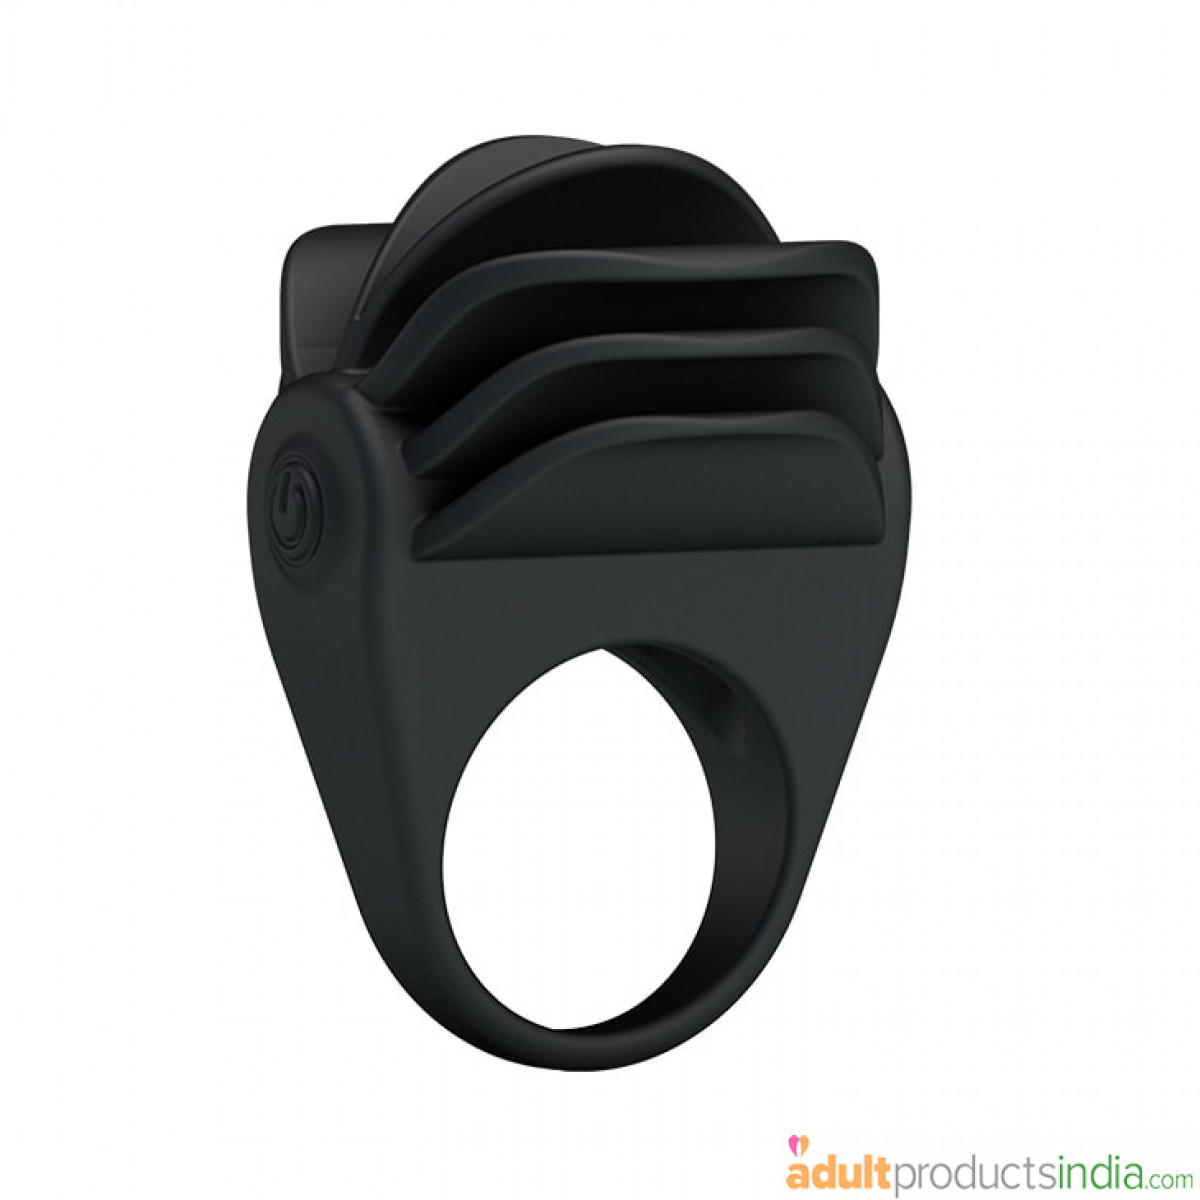 Waterproof Black Silicone Cock Ring